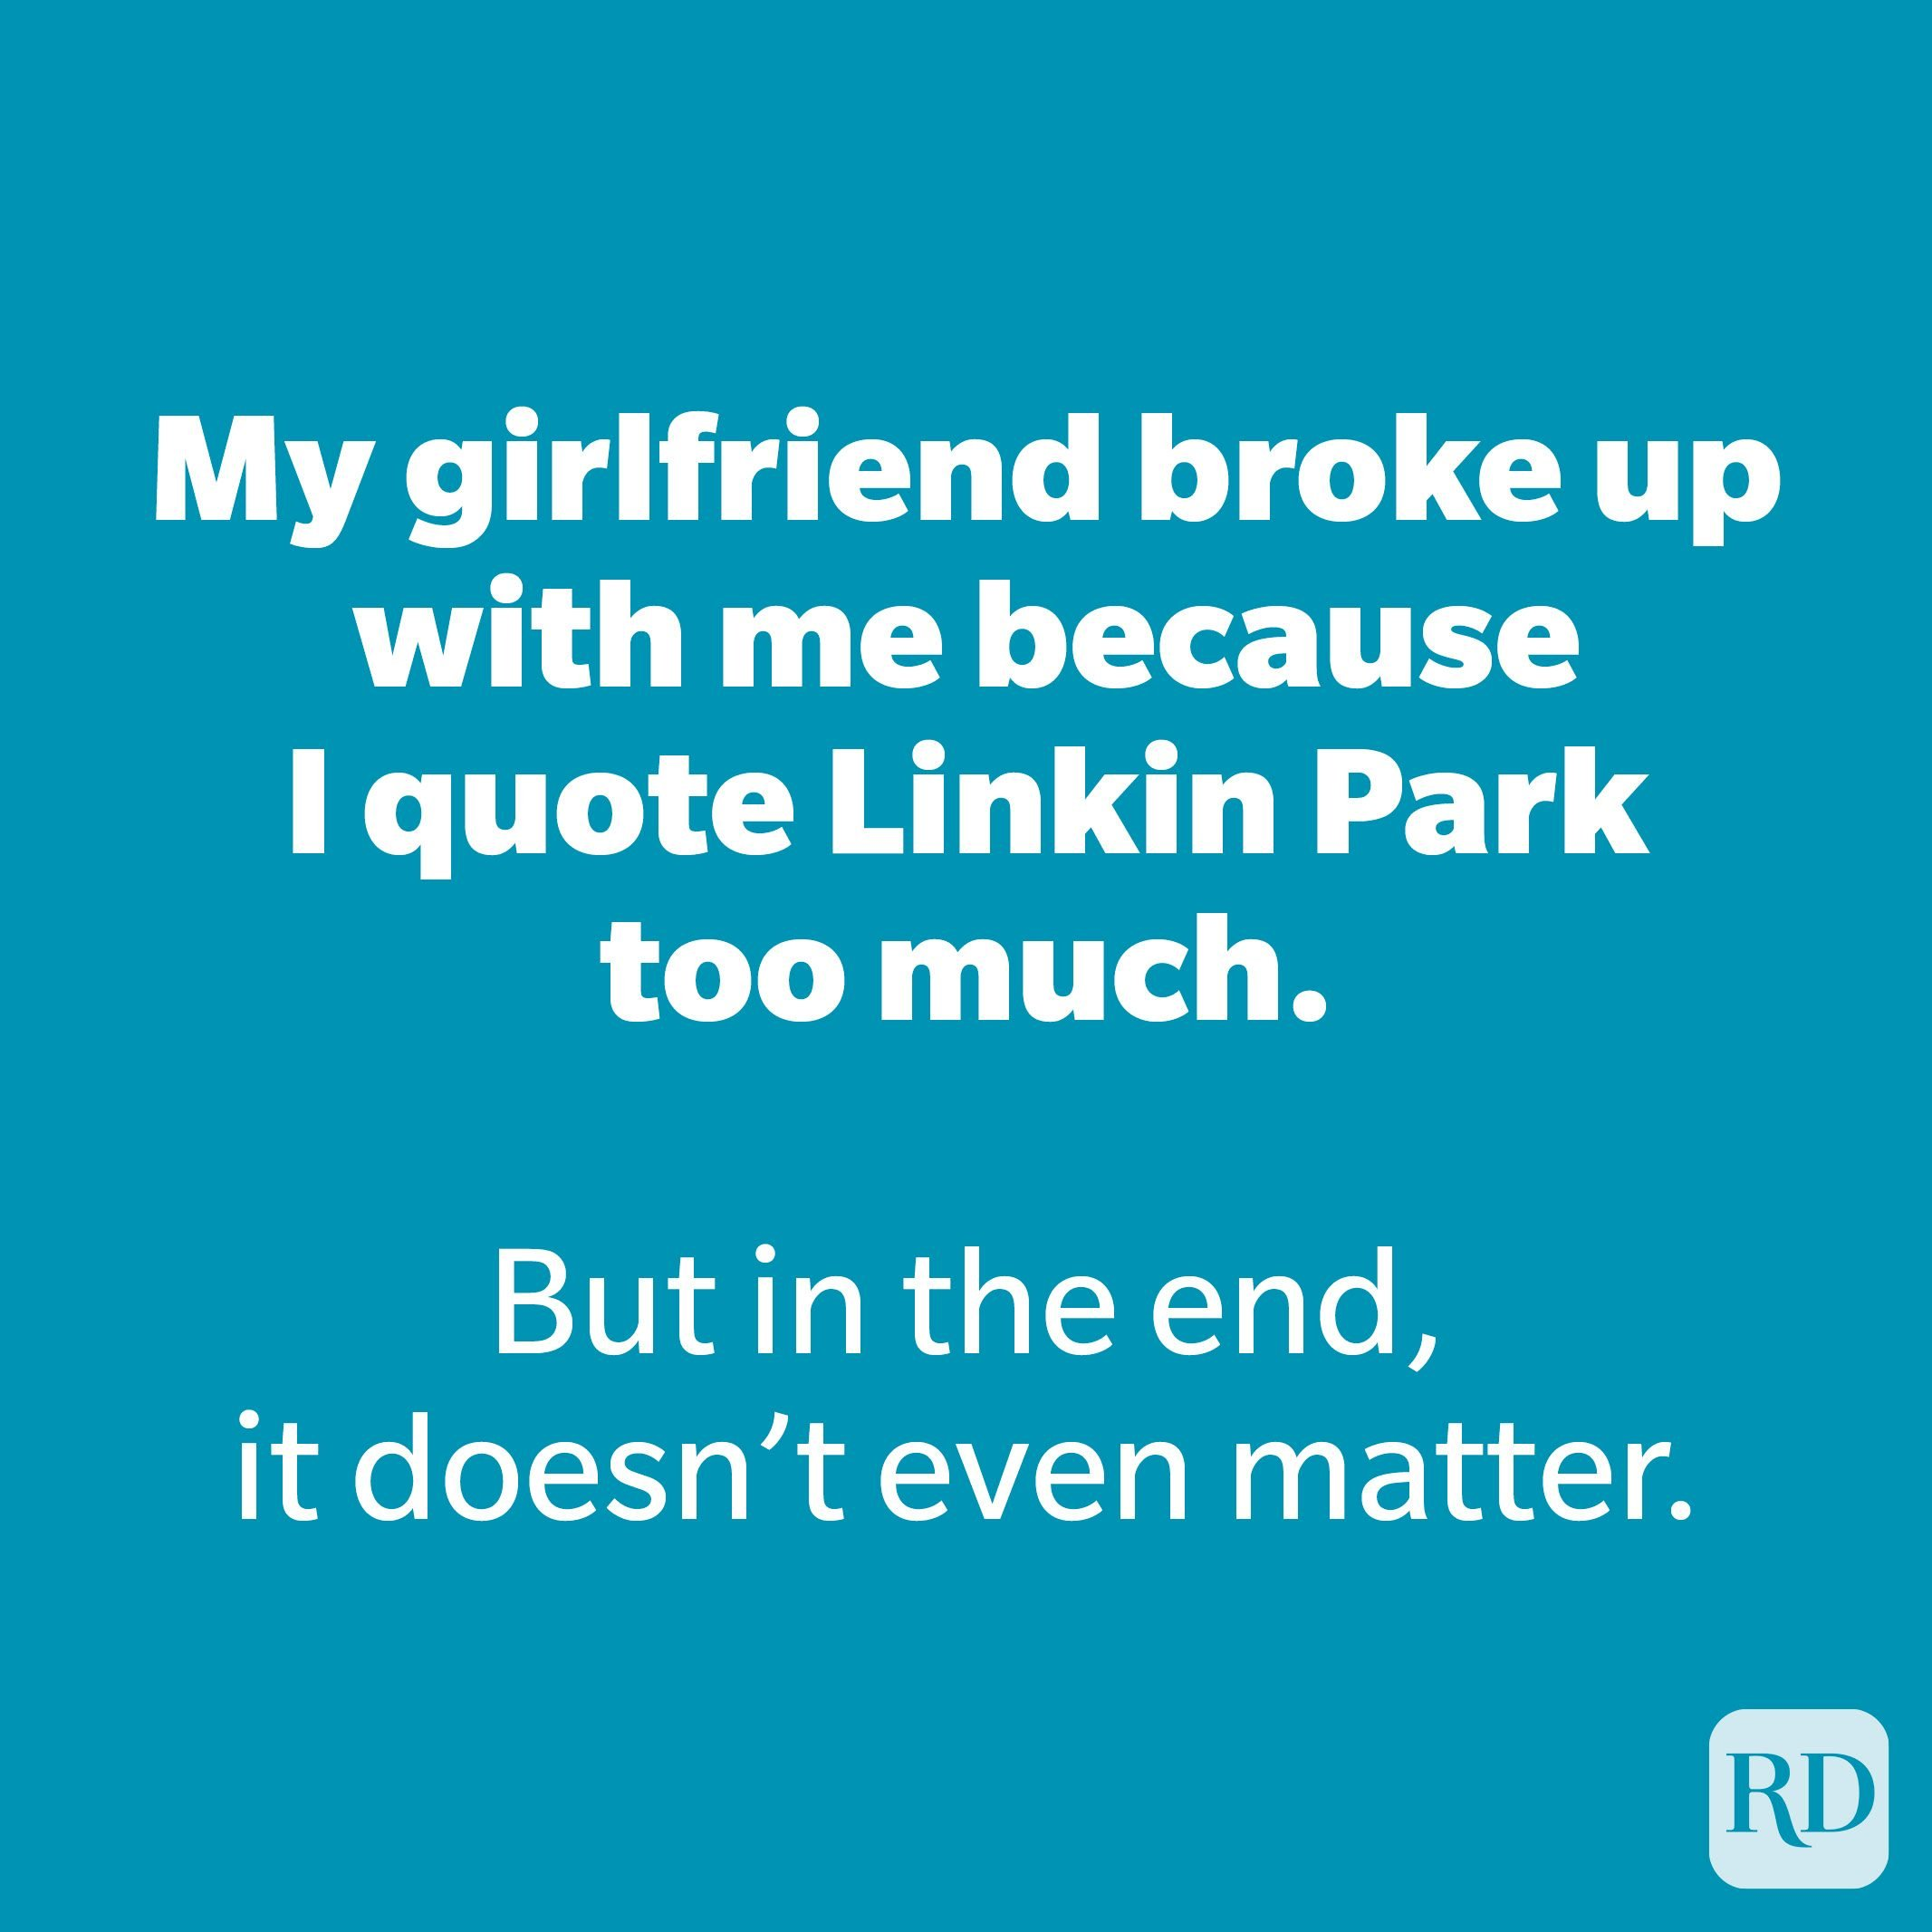 My girlfriend broke up with me because I quote Linkin Park too much.